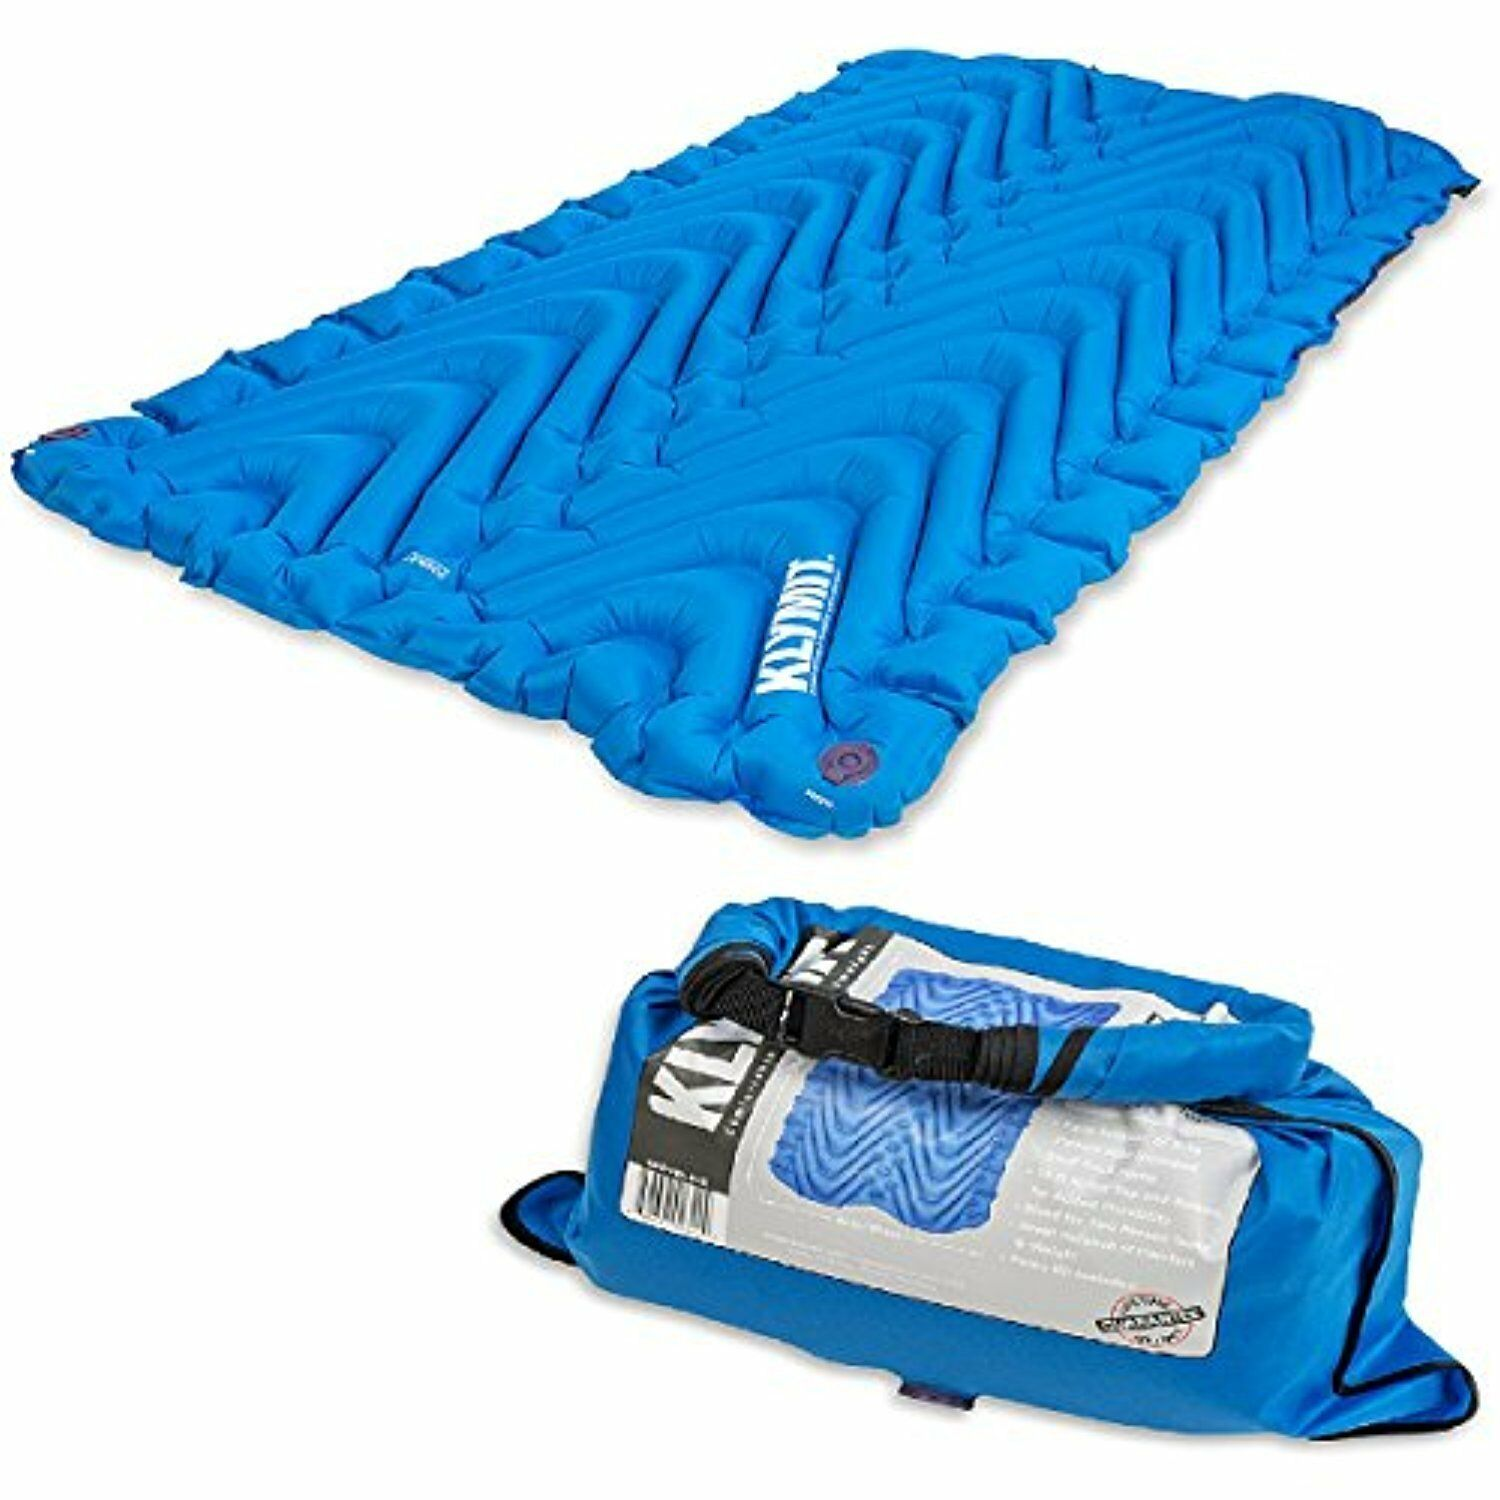 KLYMIT Static Double V Sleeping Pad Two-person Camping Travel bluee Mat BRAND NEW